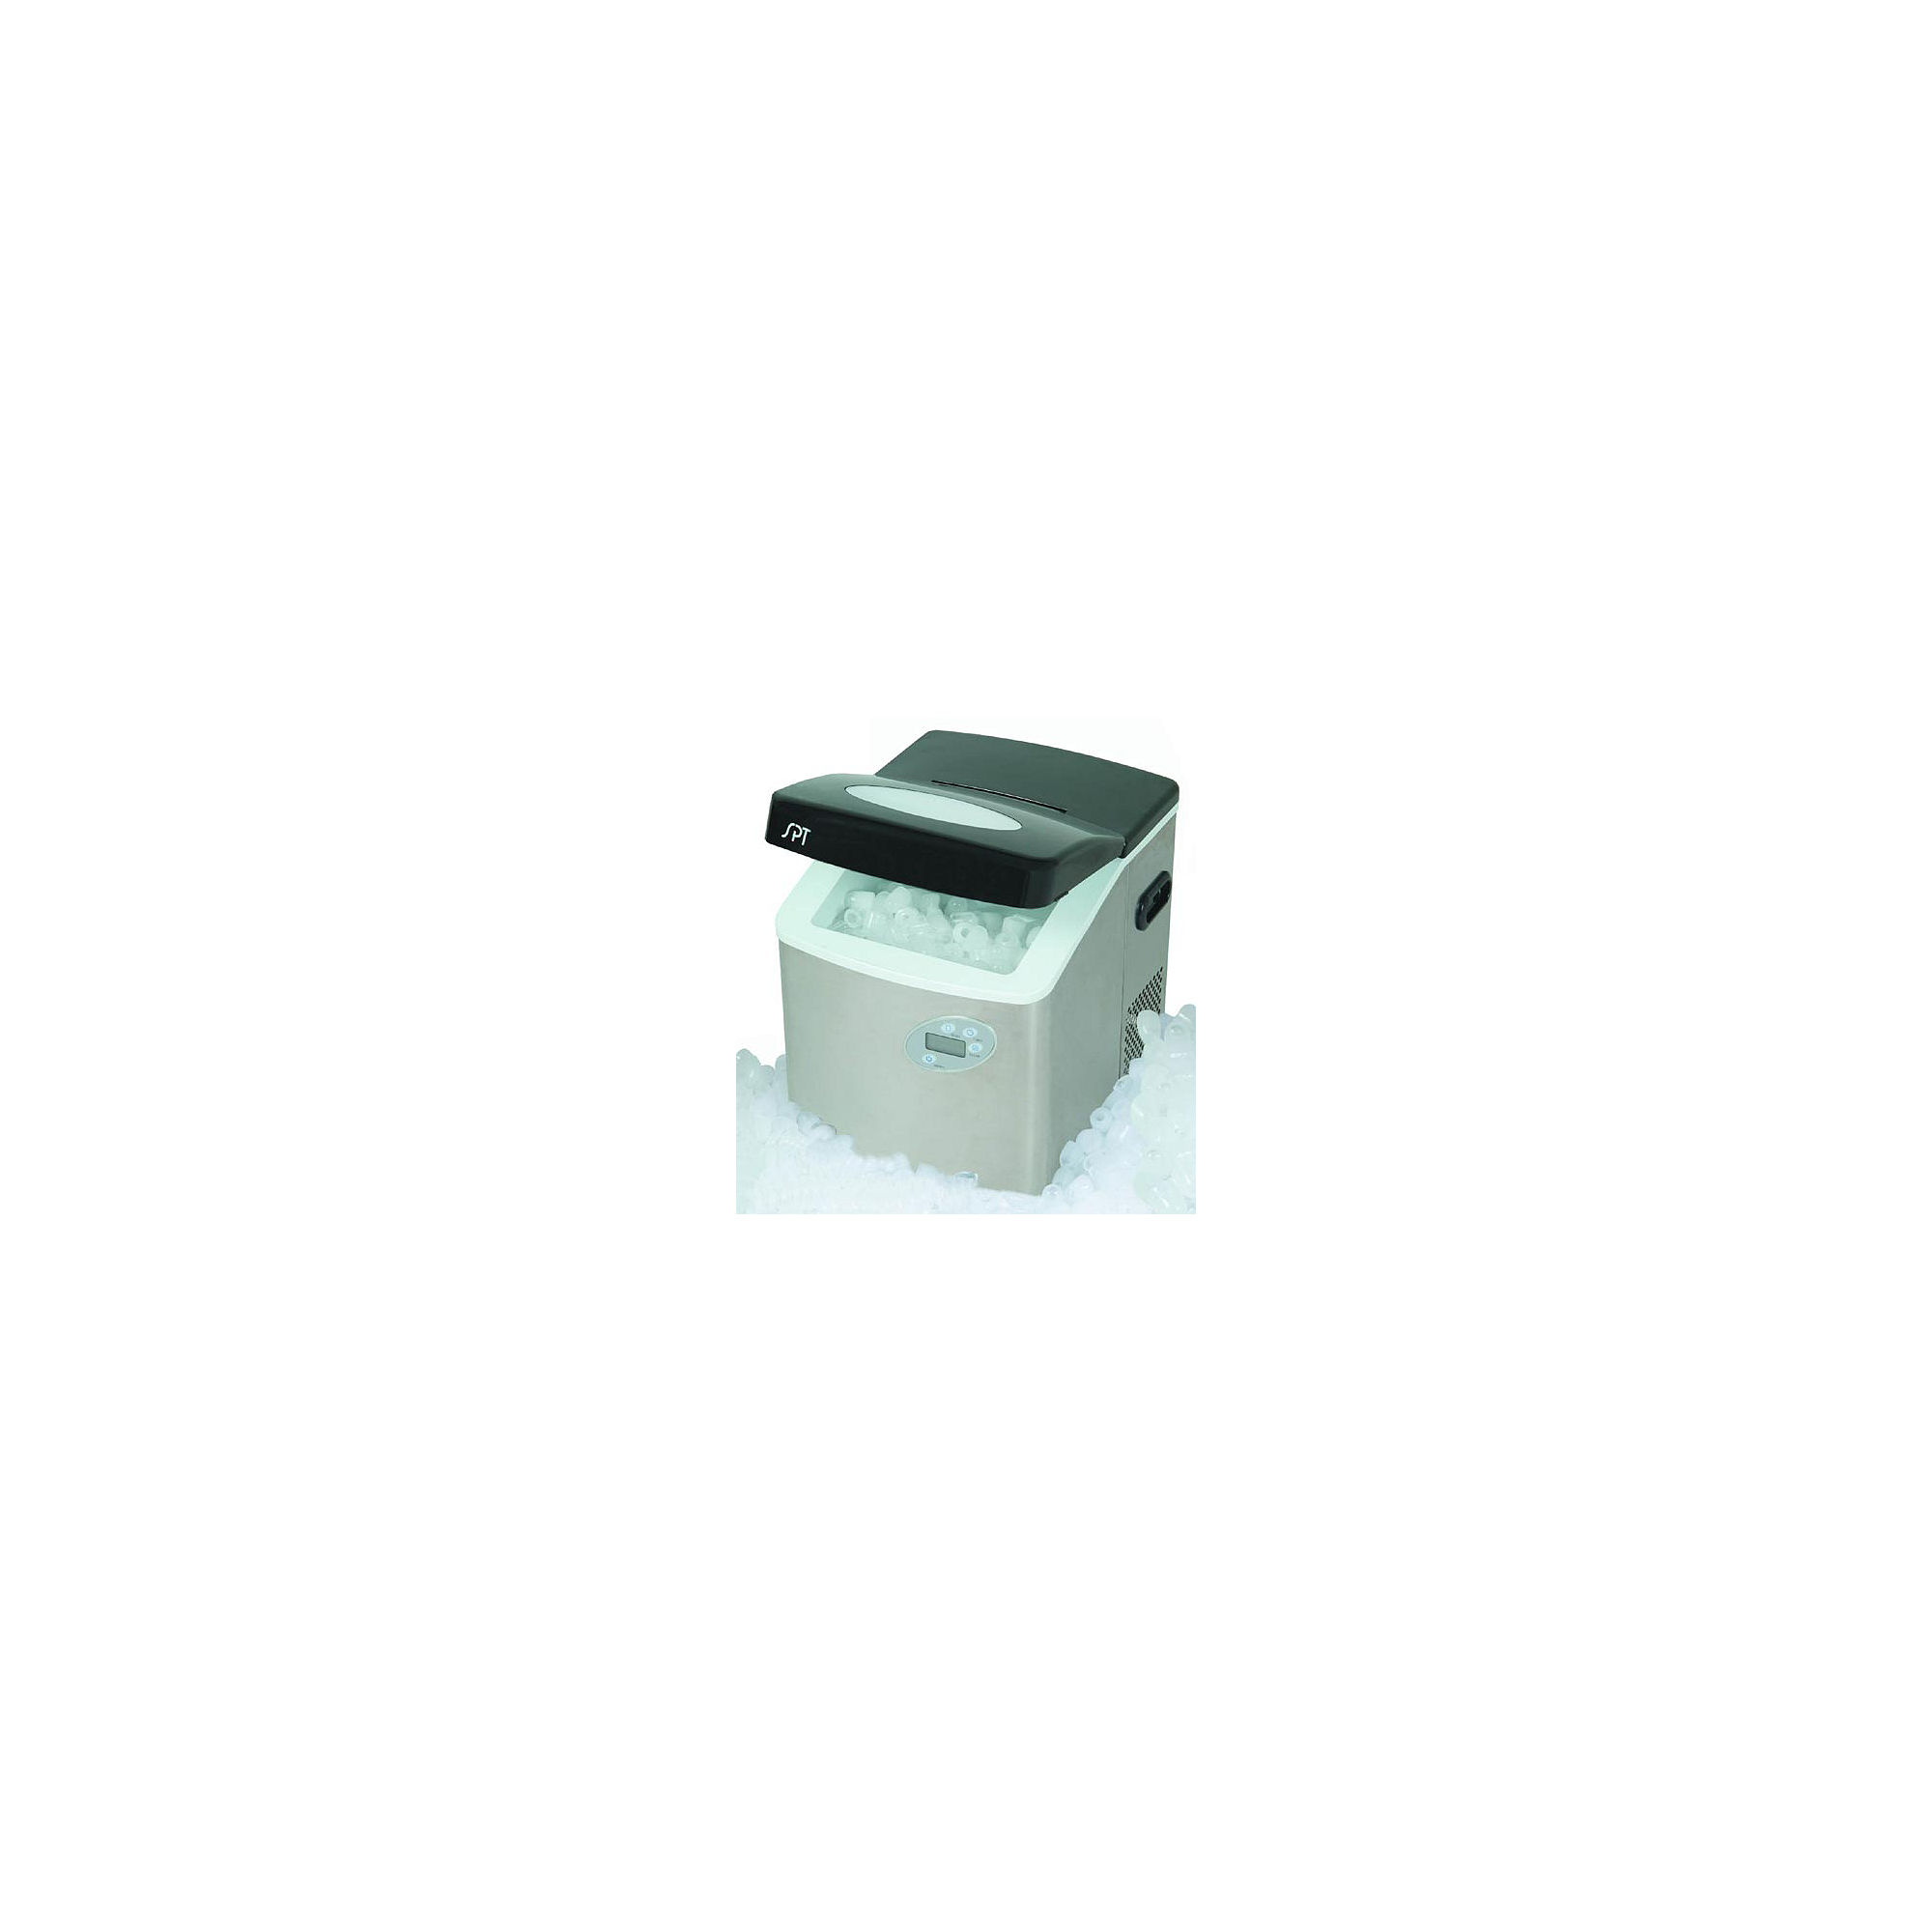 SPT IM-101S: Stainless Steel Portable Ice Maker with Digital Controls